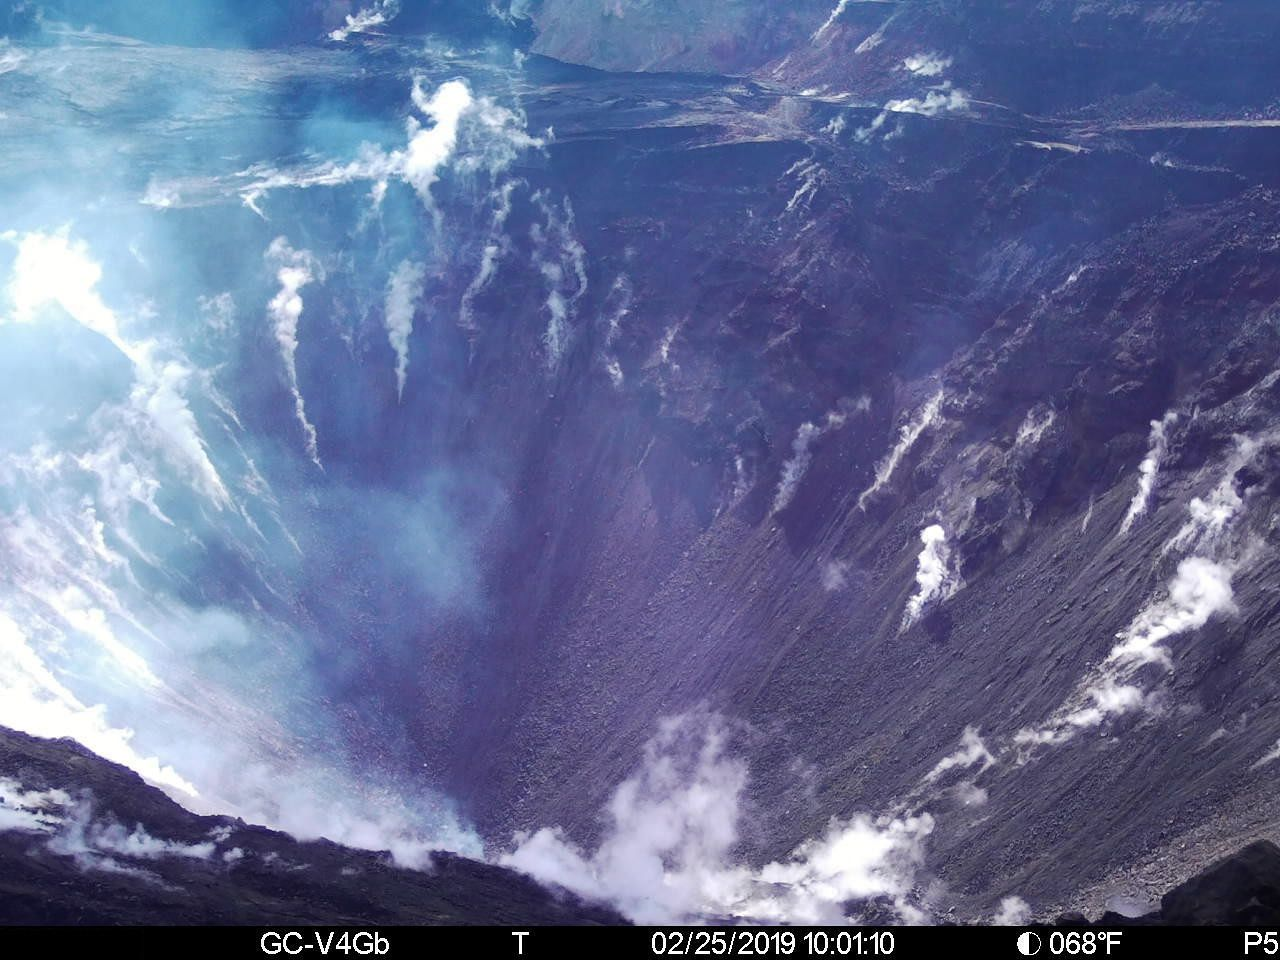 Kilauea summit - new webcam at crater Halema'uma'u - image 25.02.2019 / USGS